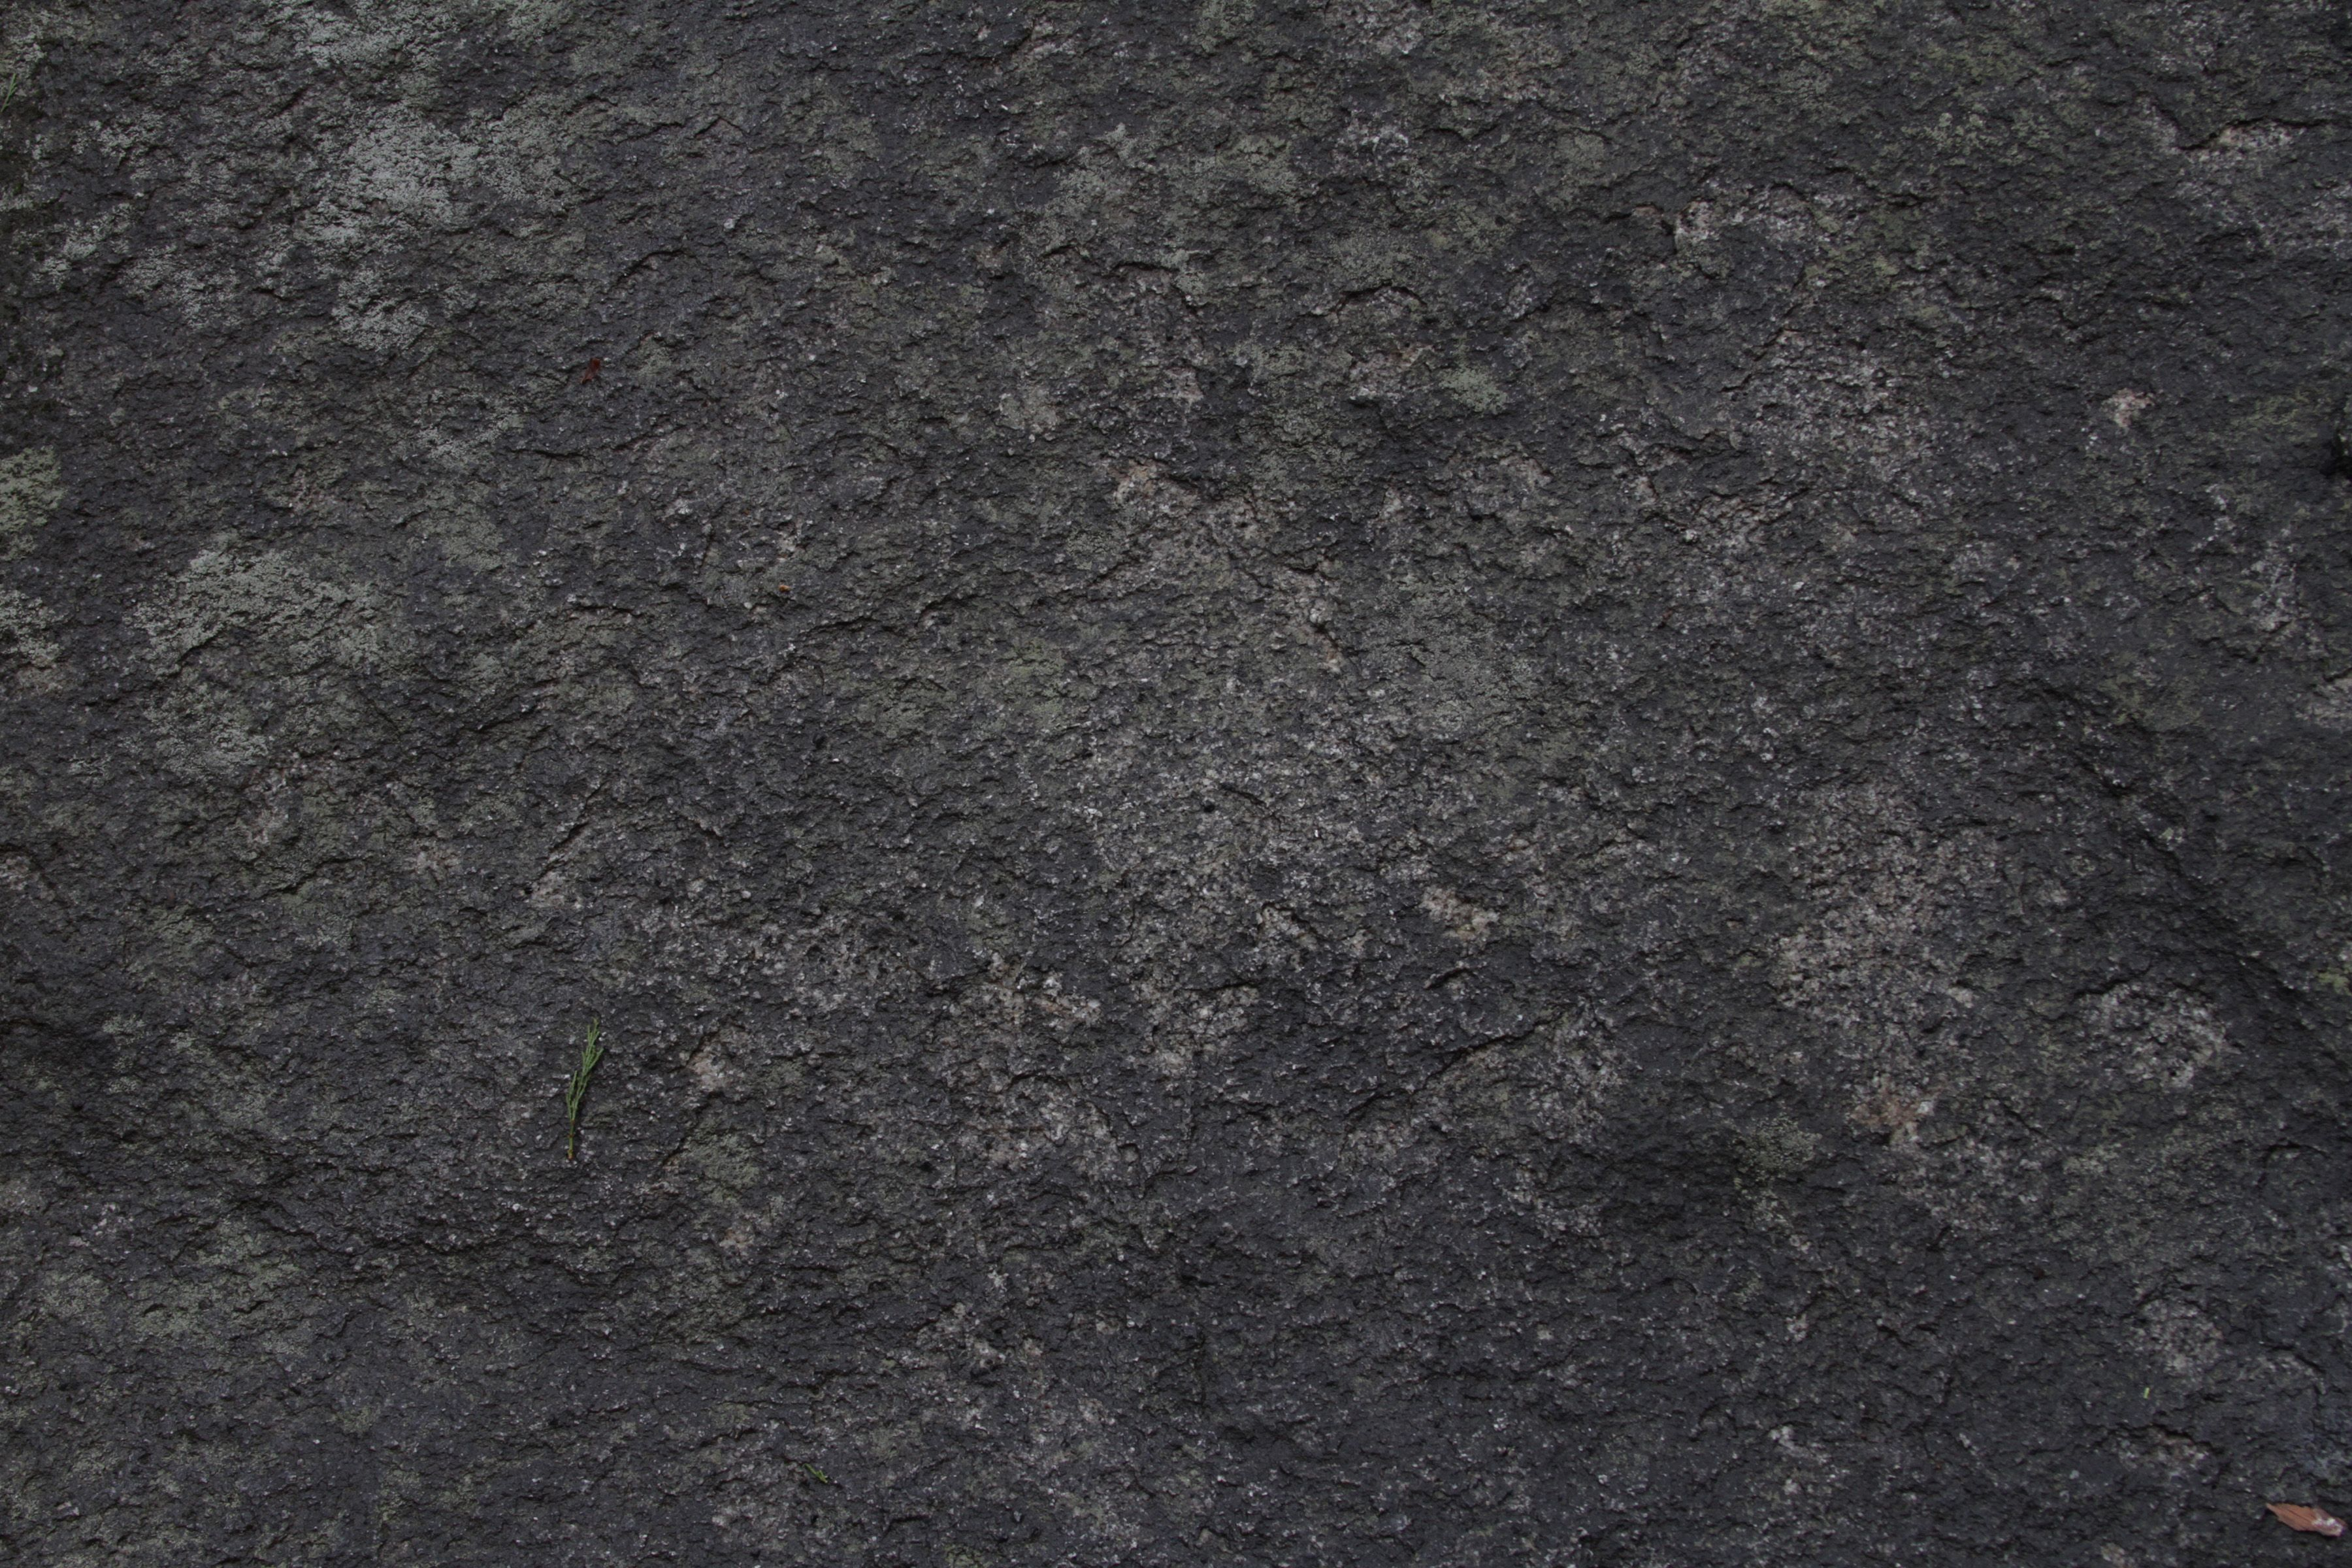 Dark Stone Tile Texture And Charcoal Stone Texture | MATERIAL ...